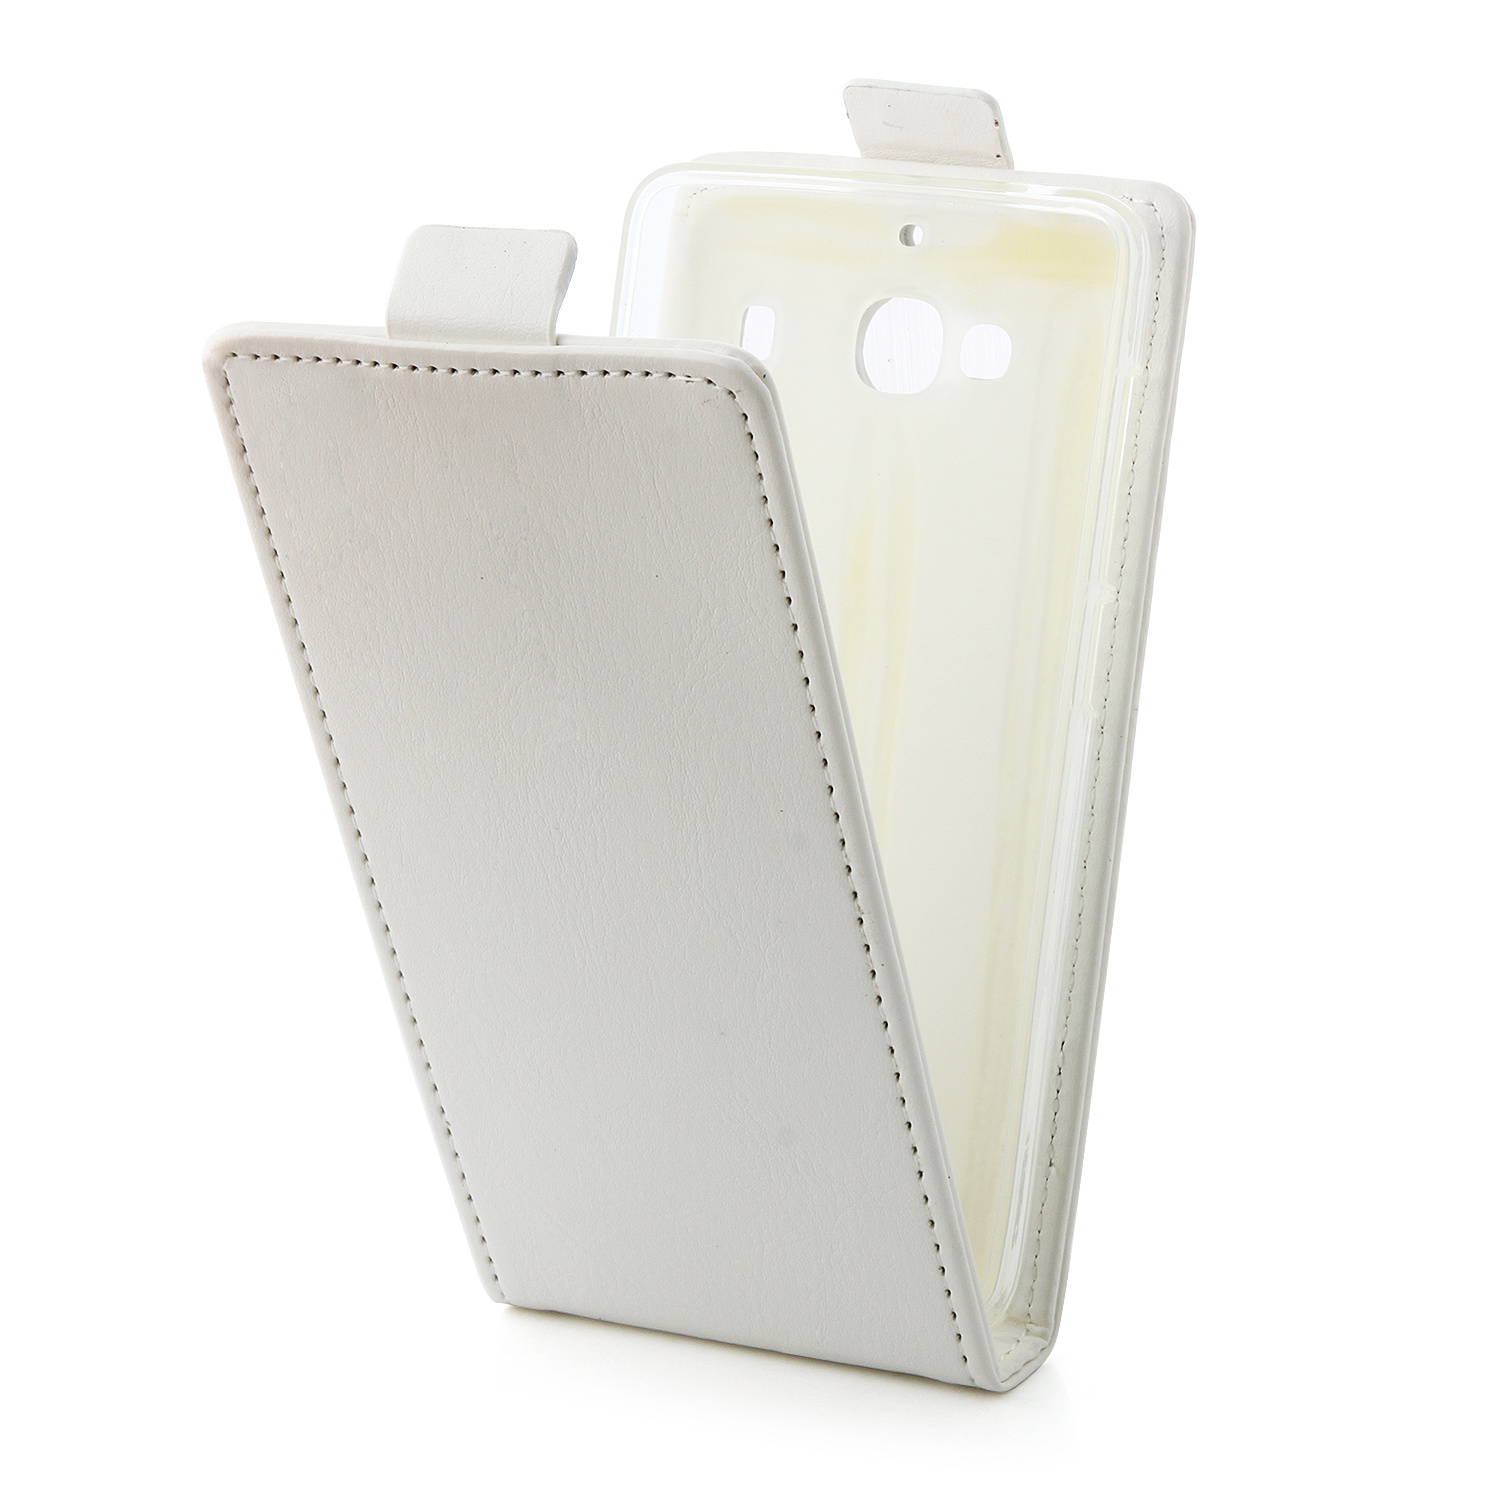 Fashion Leather Flip Case Cover for XIAOMI Redmi 2 Smartphone White